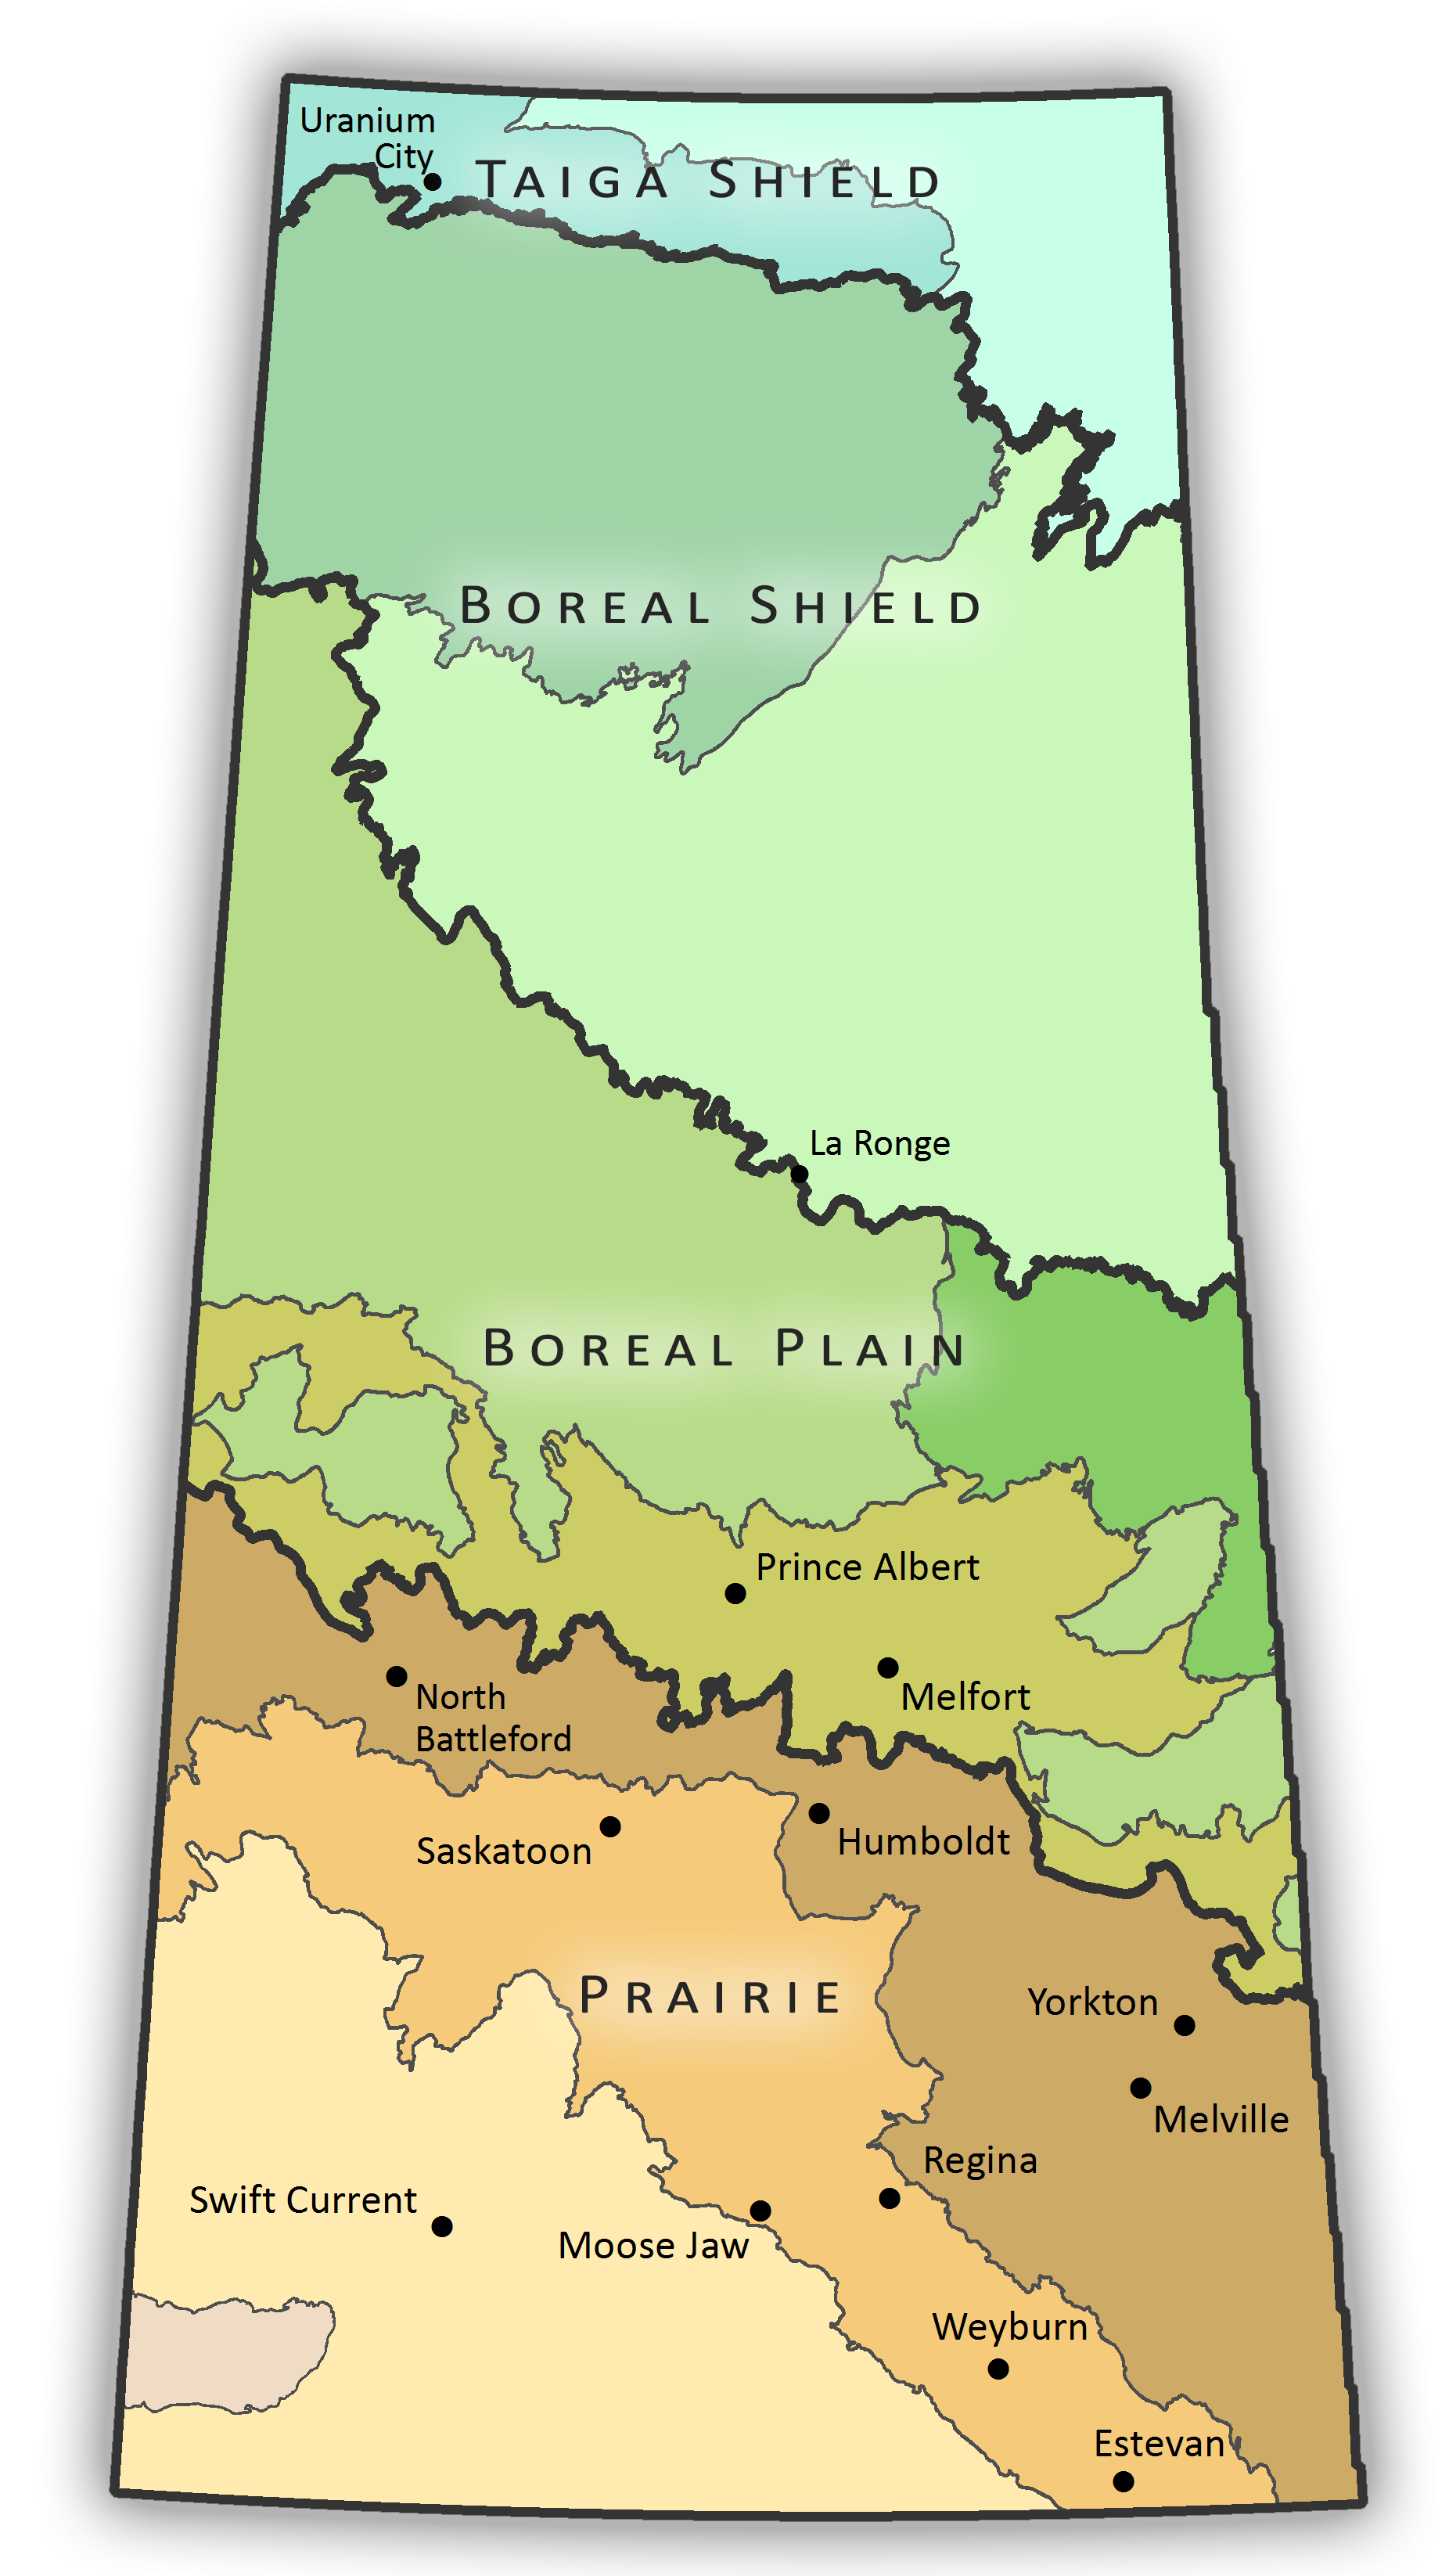 Map illustrating the Ecozones and Ecoregions of Saskatchewan. Click on an ecoregion to display a pop-up window with more information.